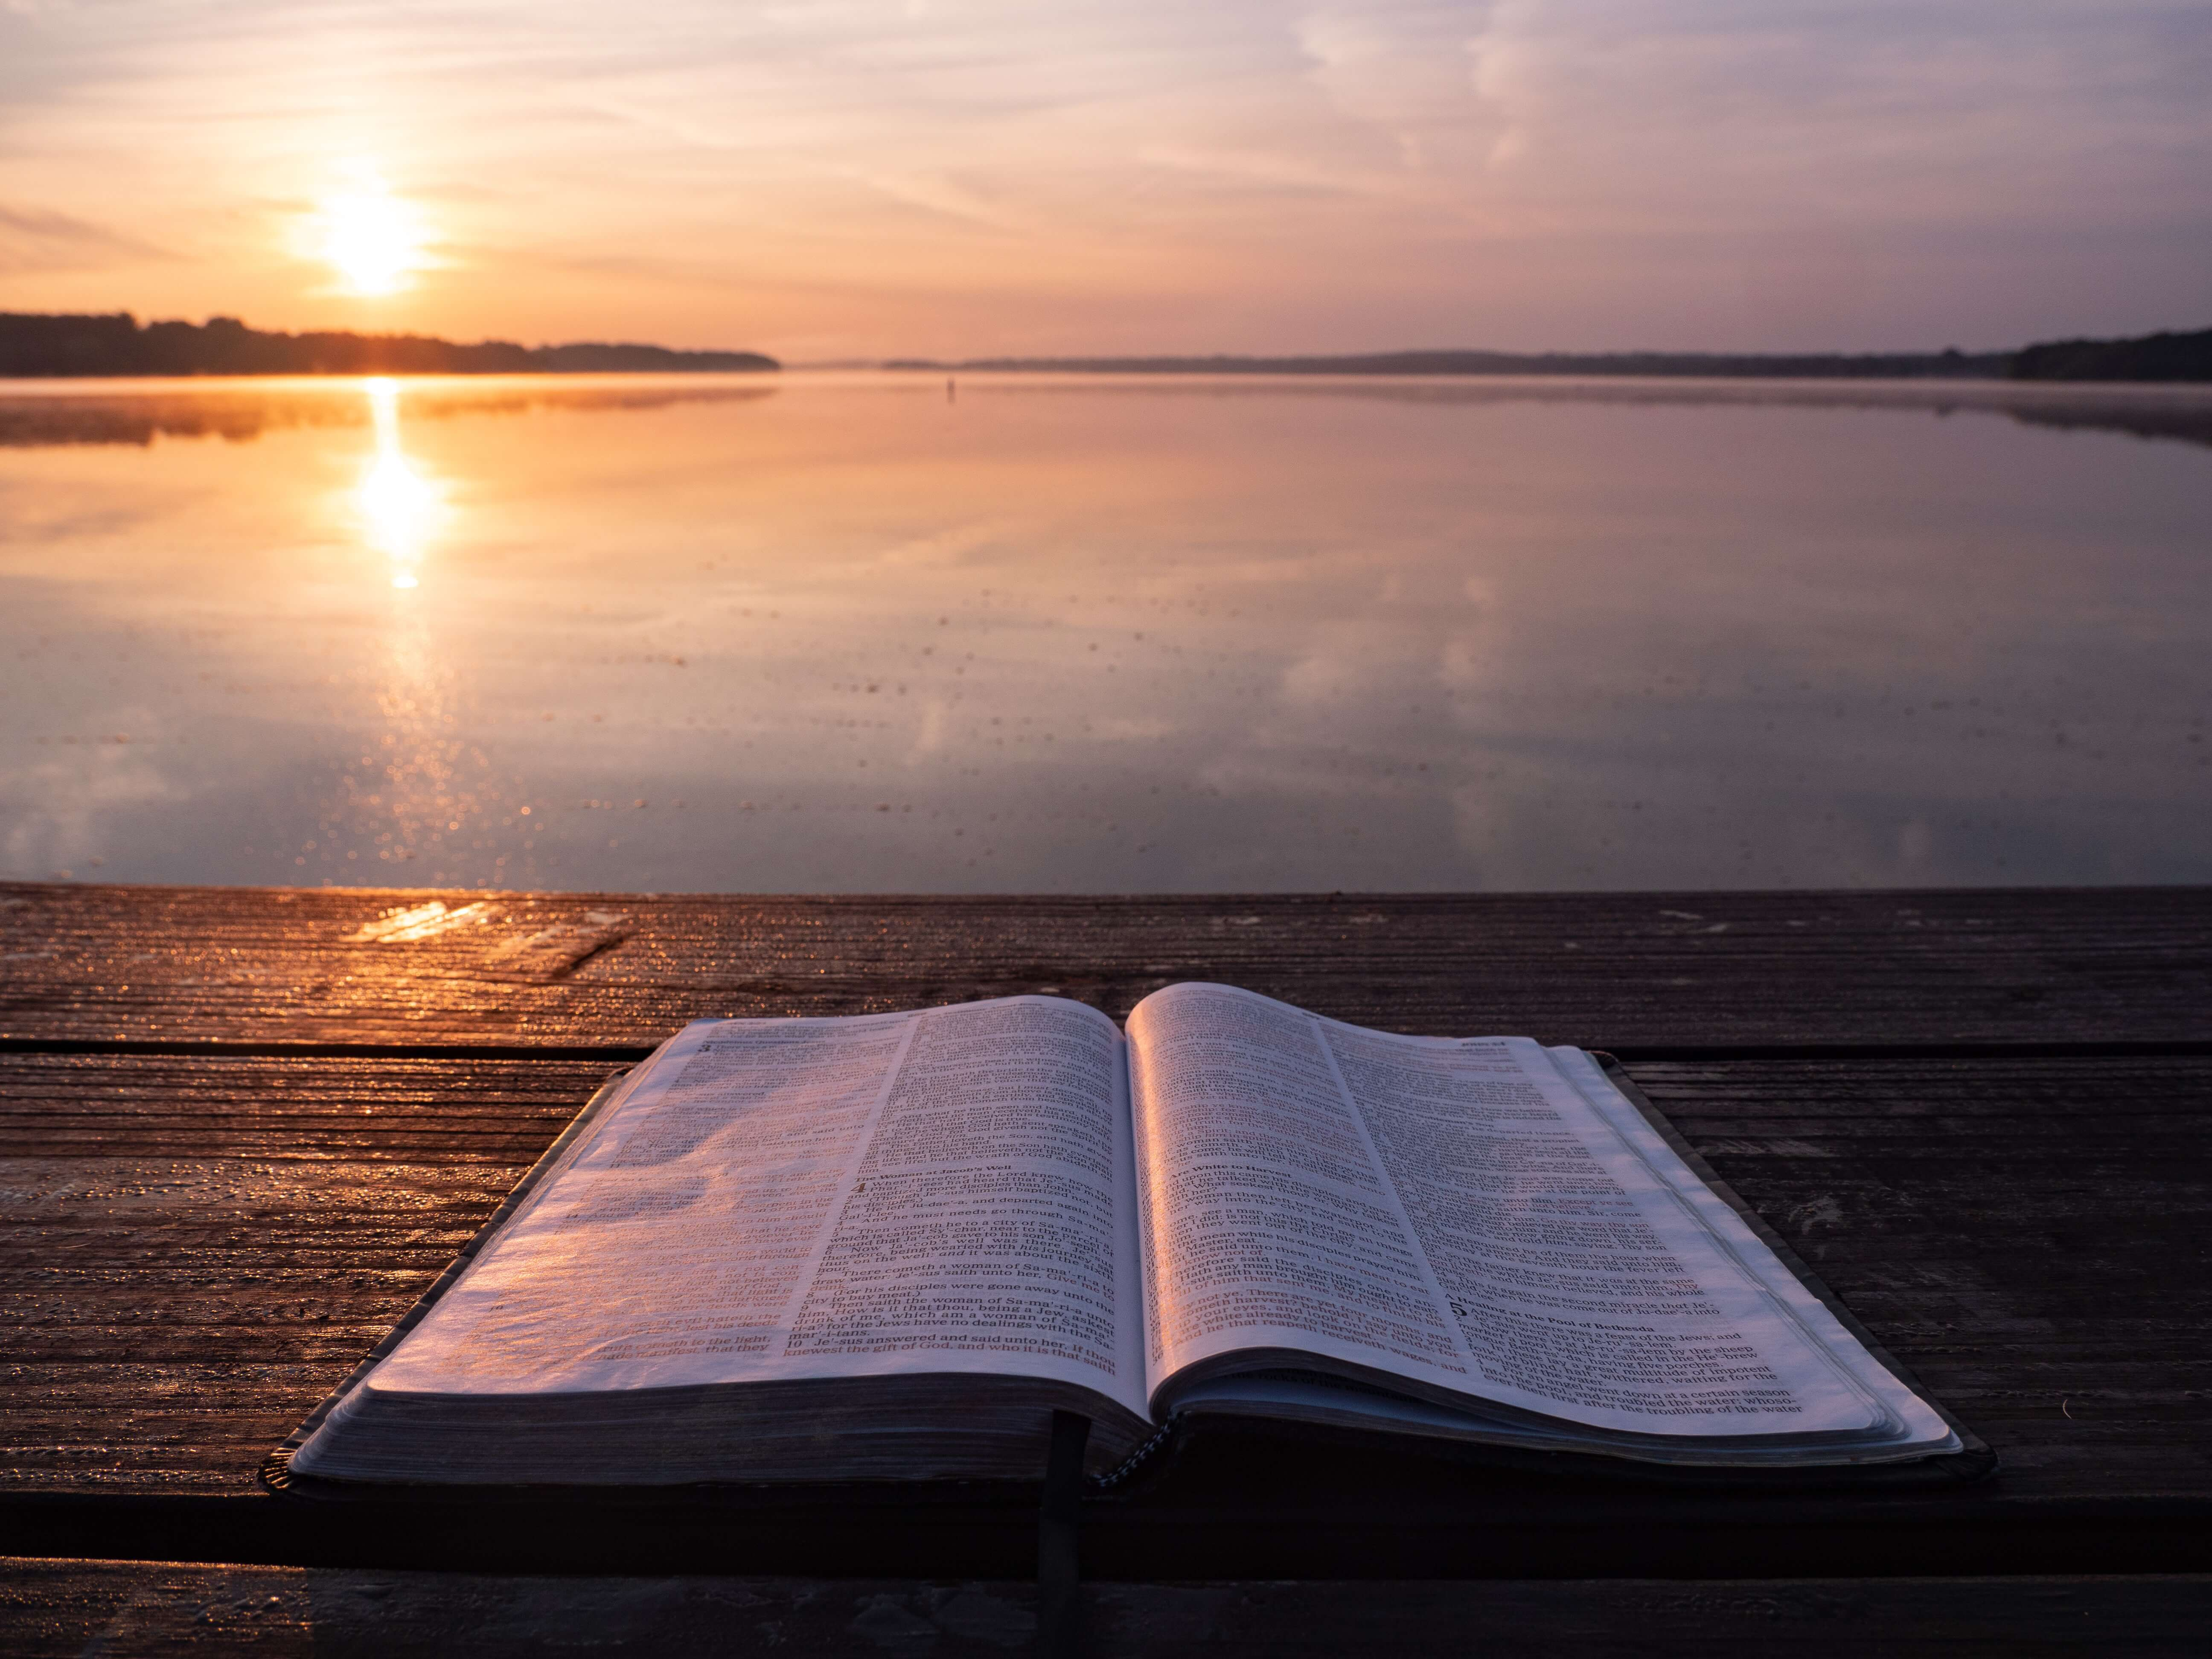 Bible in front of a lake